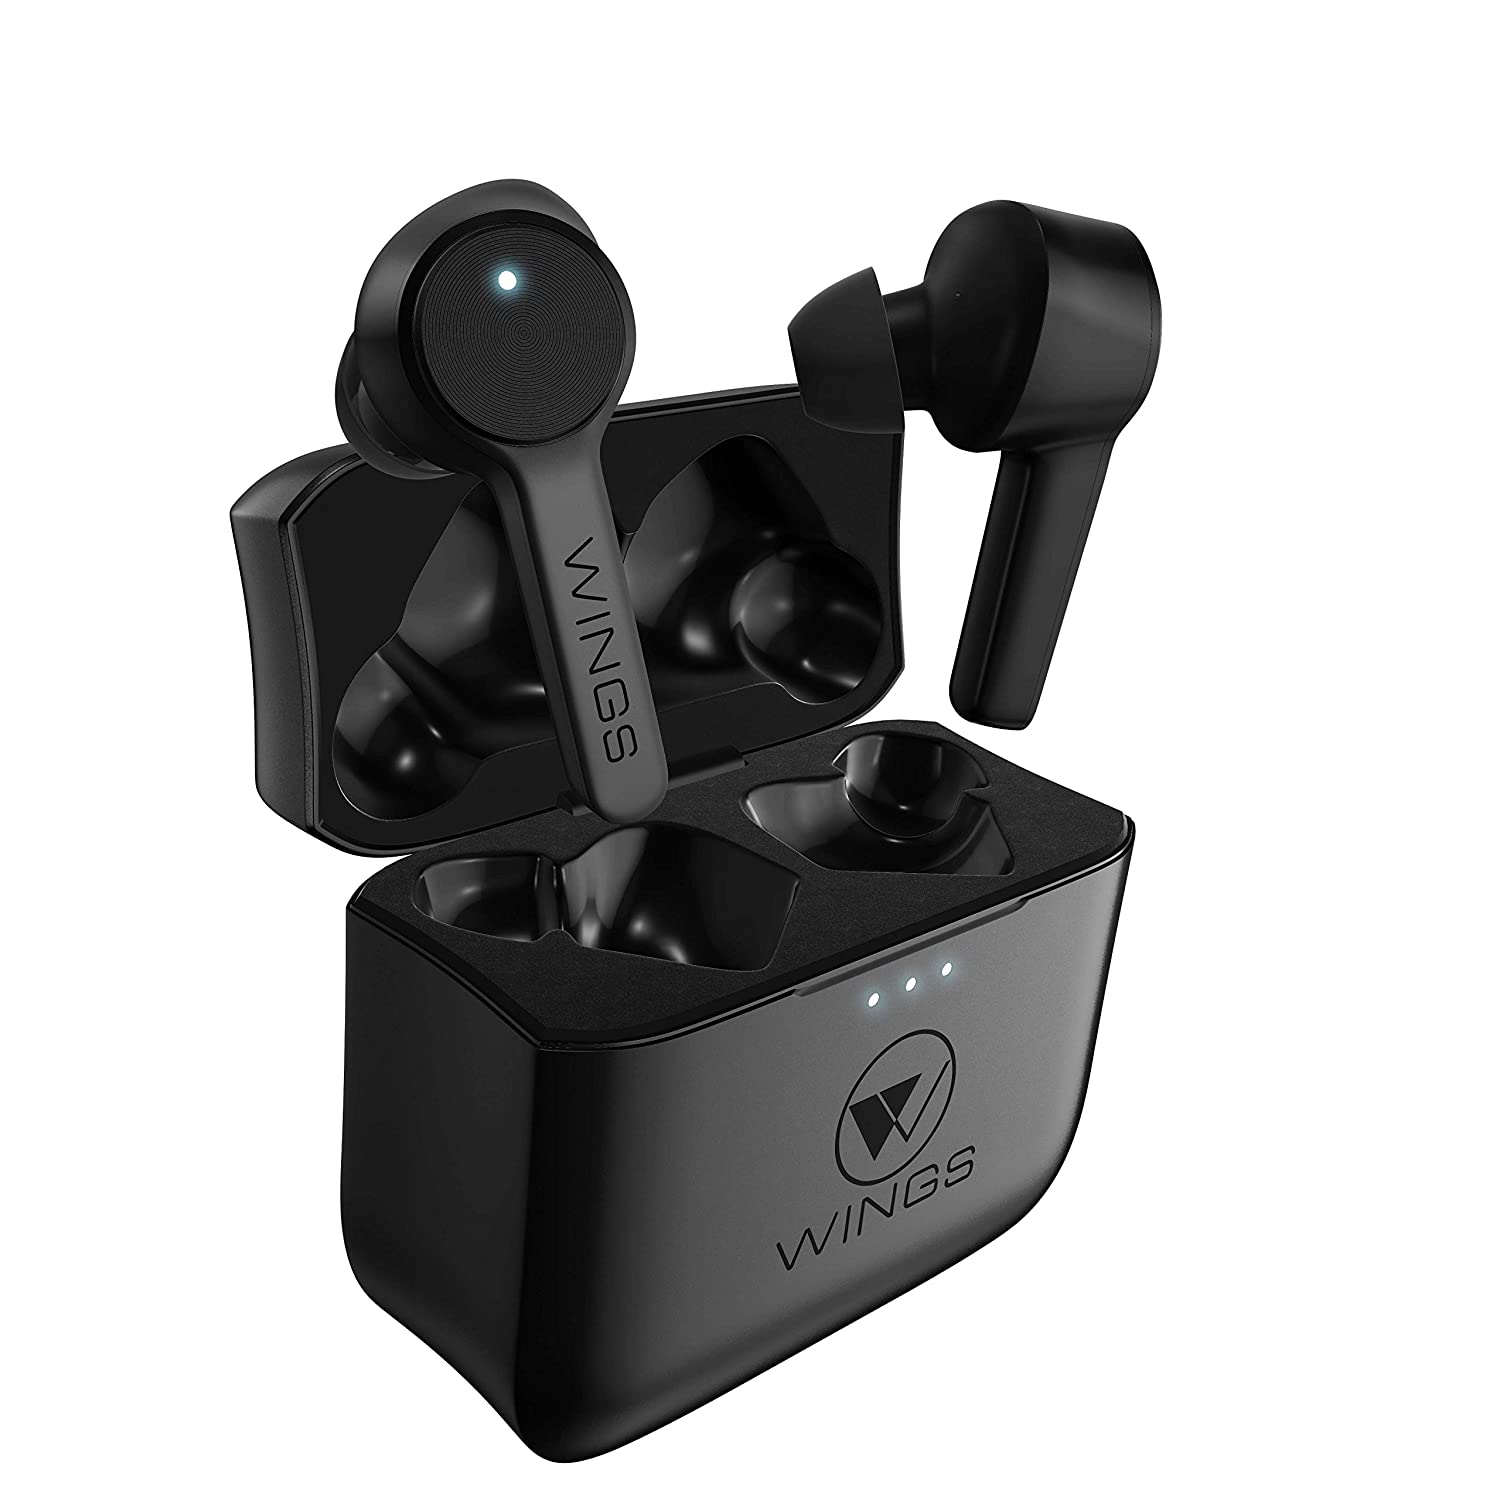 Wings Techno Bluetooth True Wireless Earbuds for ₹1,999